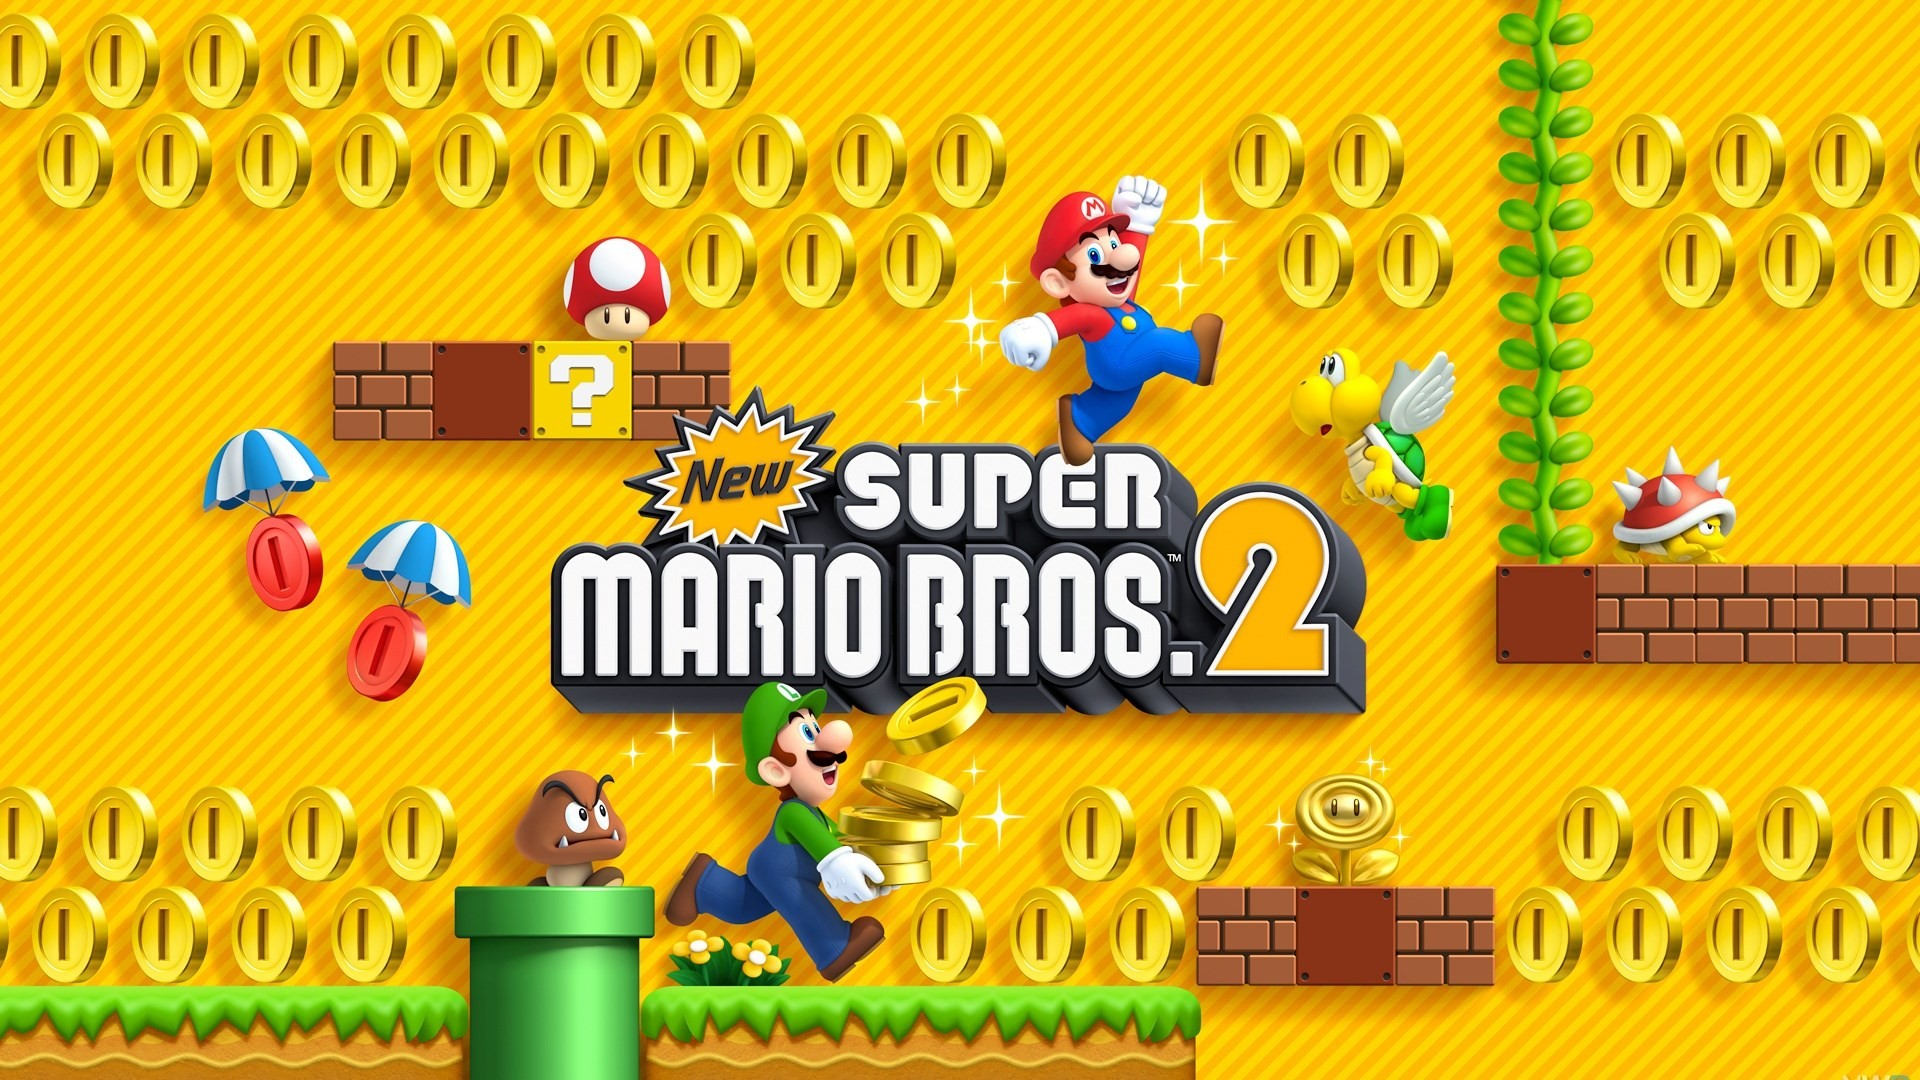 2017-03-23 – new super mario bros_ 2 picture – Full HD Wallpapers